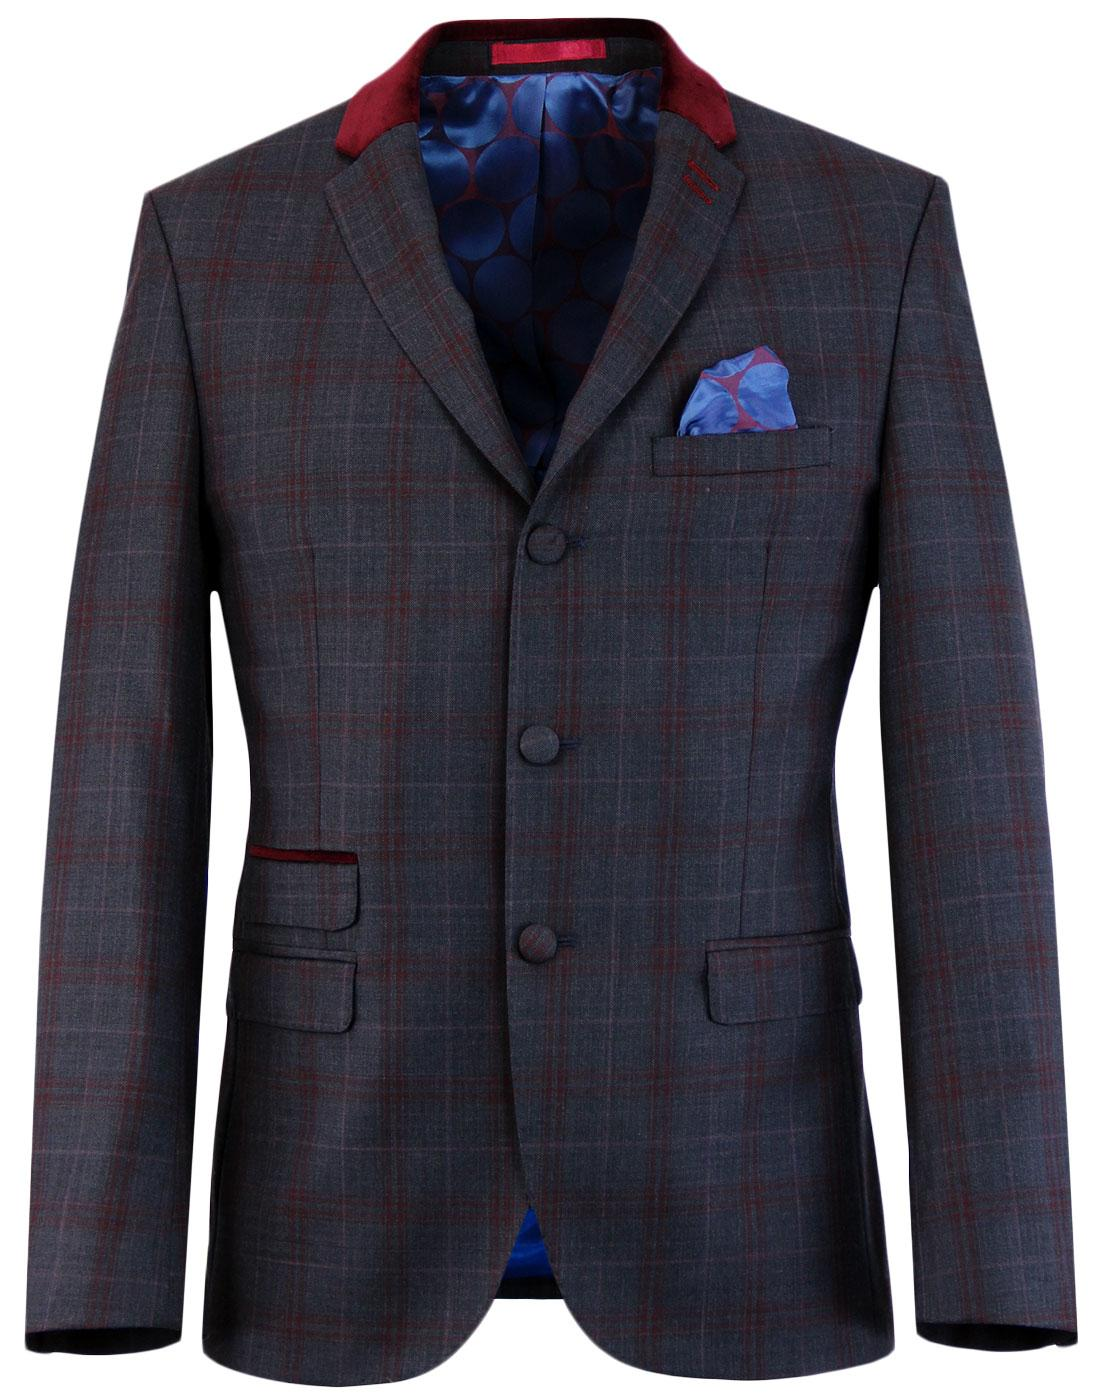 MADCAP ENGLAND Mod Velvet Collar Check Suit Jacket